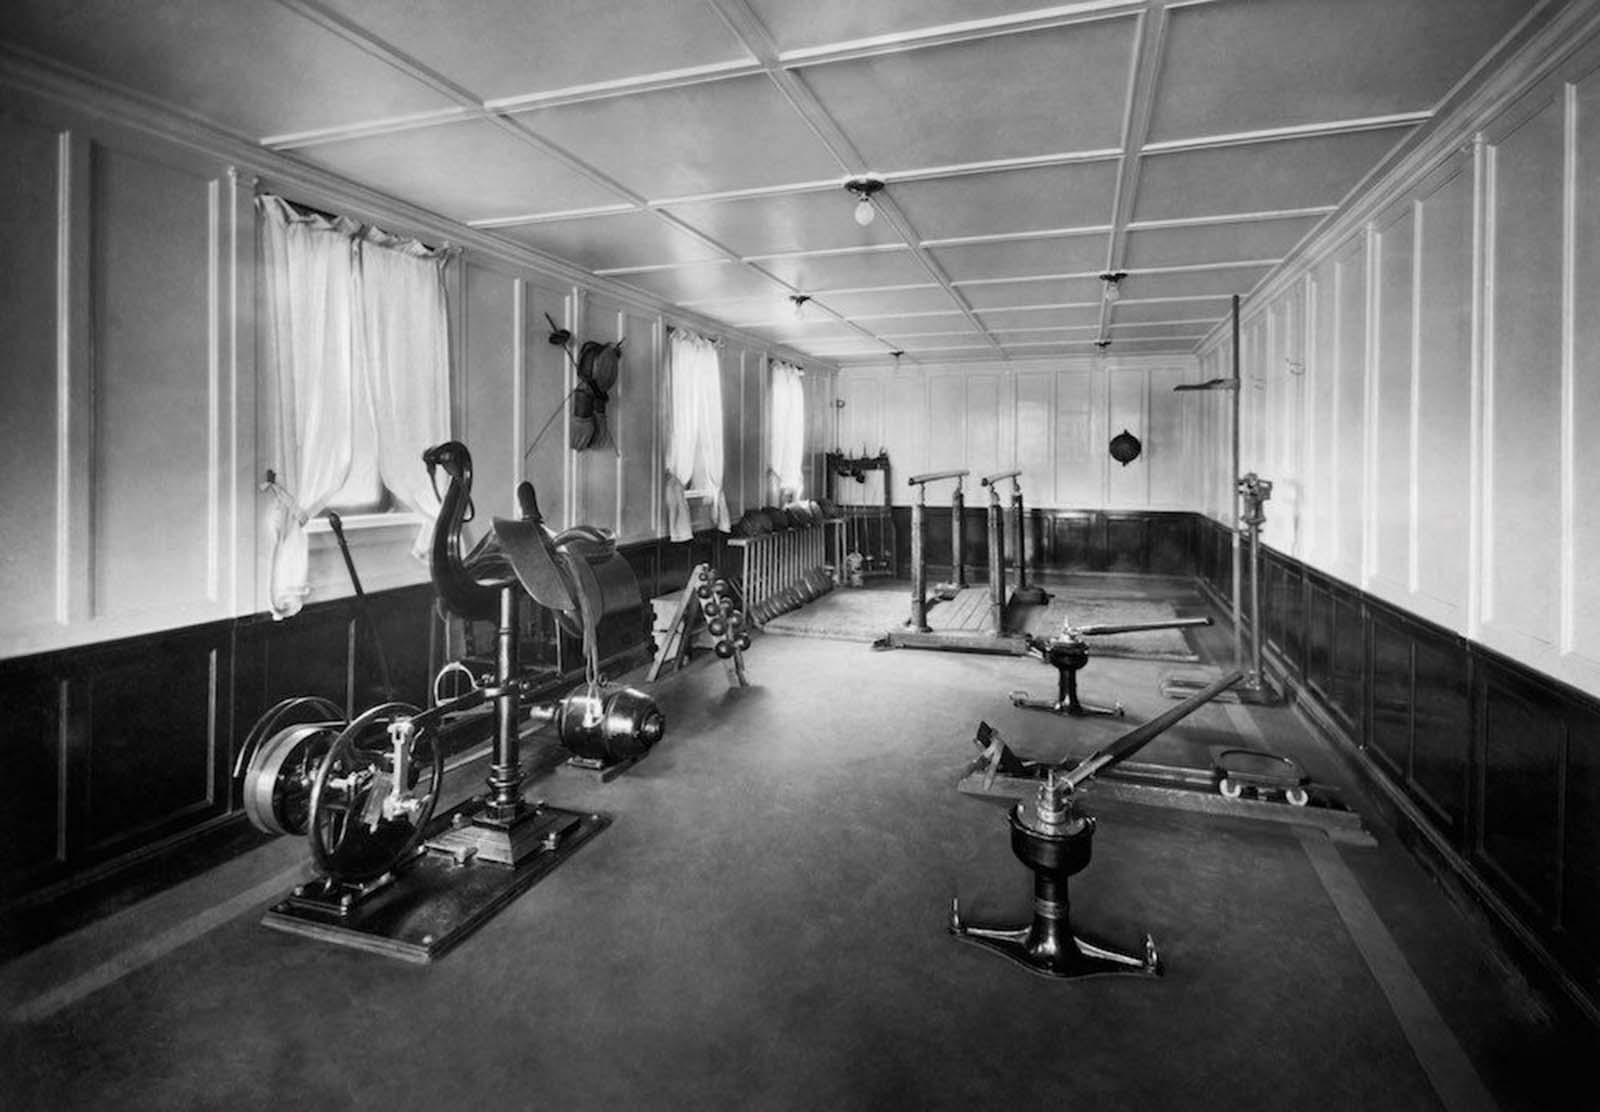 Gym of the Neptunia Transatlantic Liner. 1930.